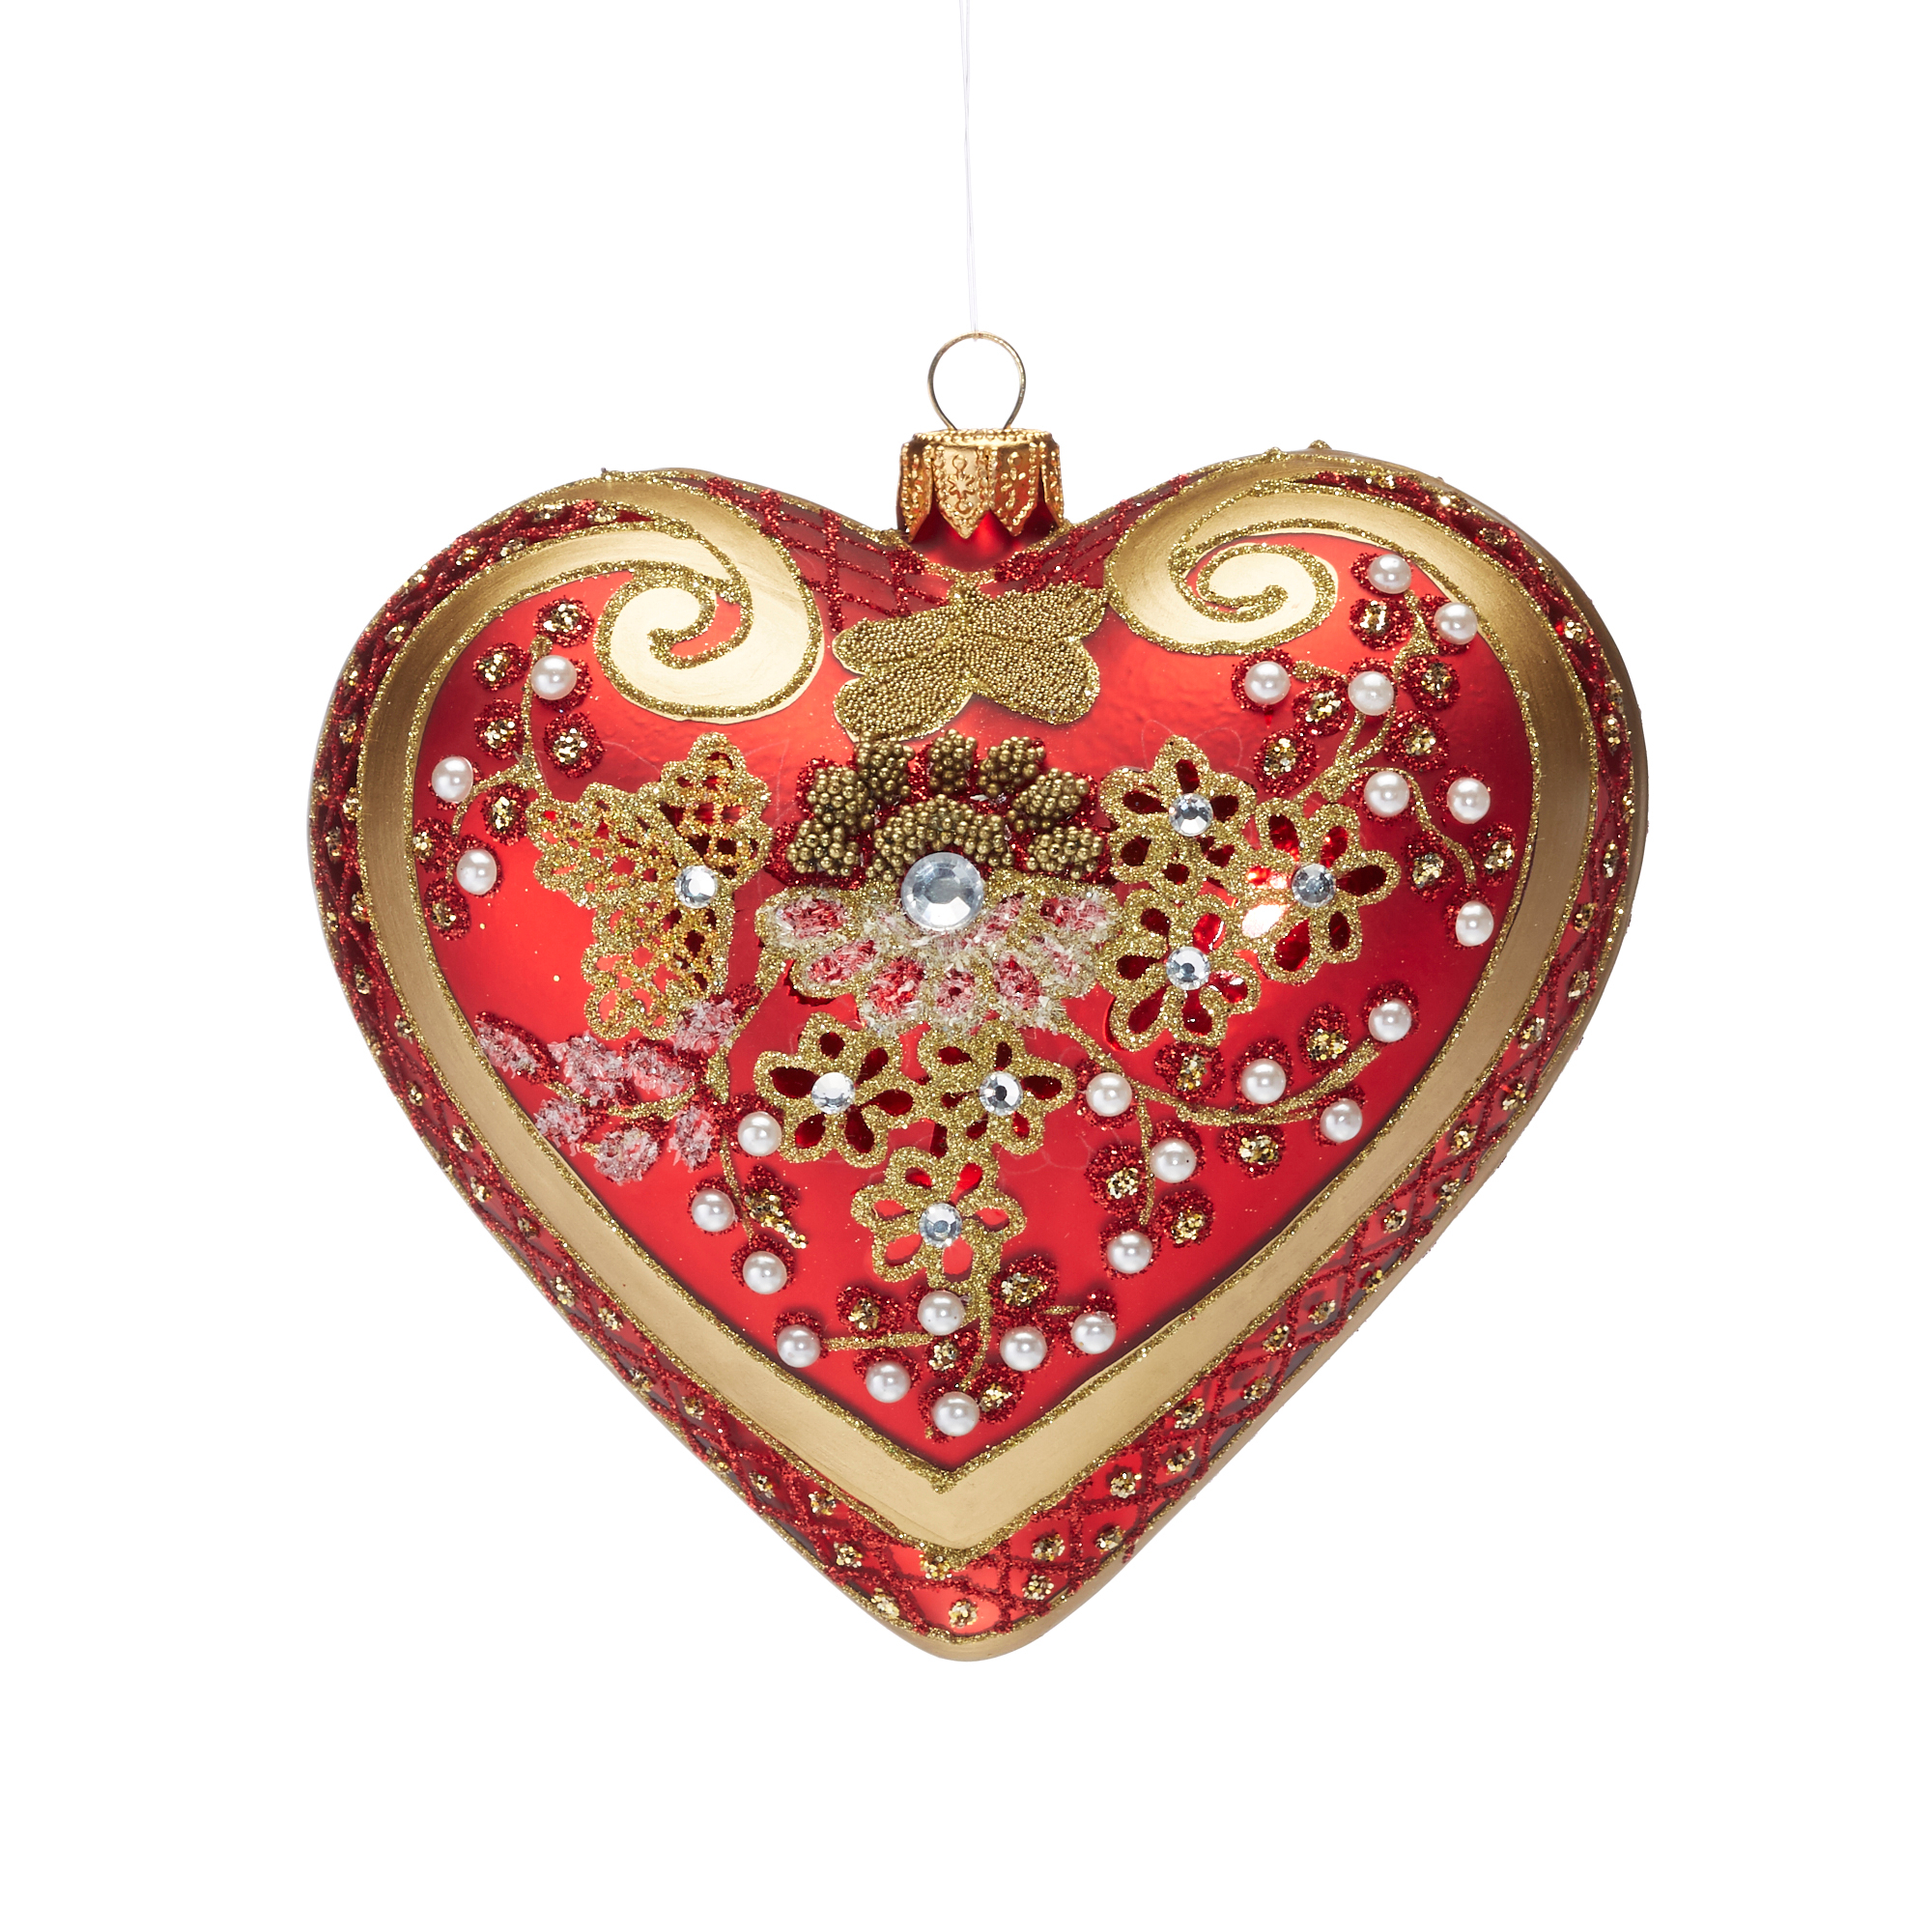 Embellished Red Heart Ornament